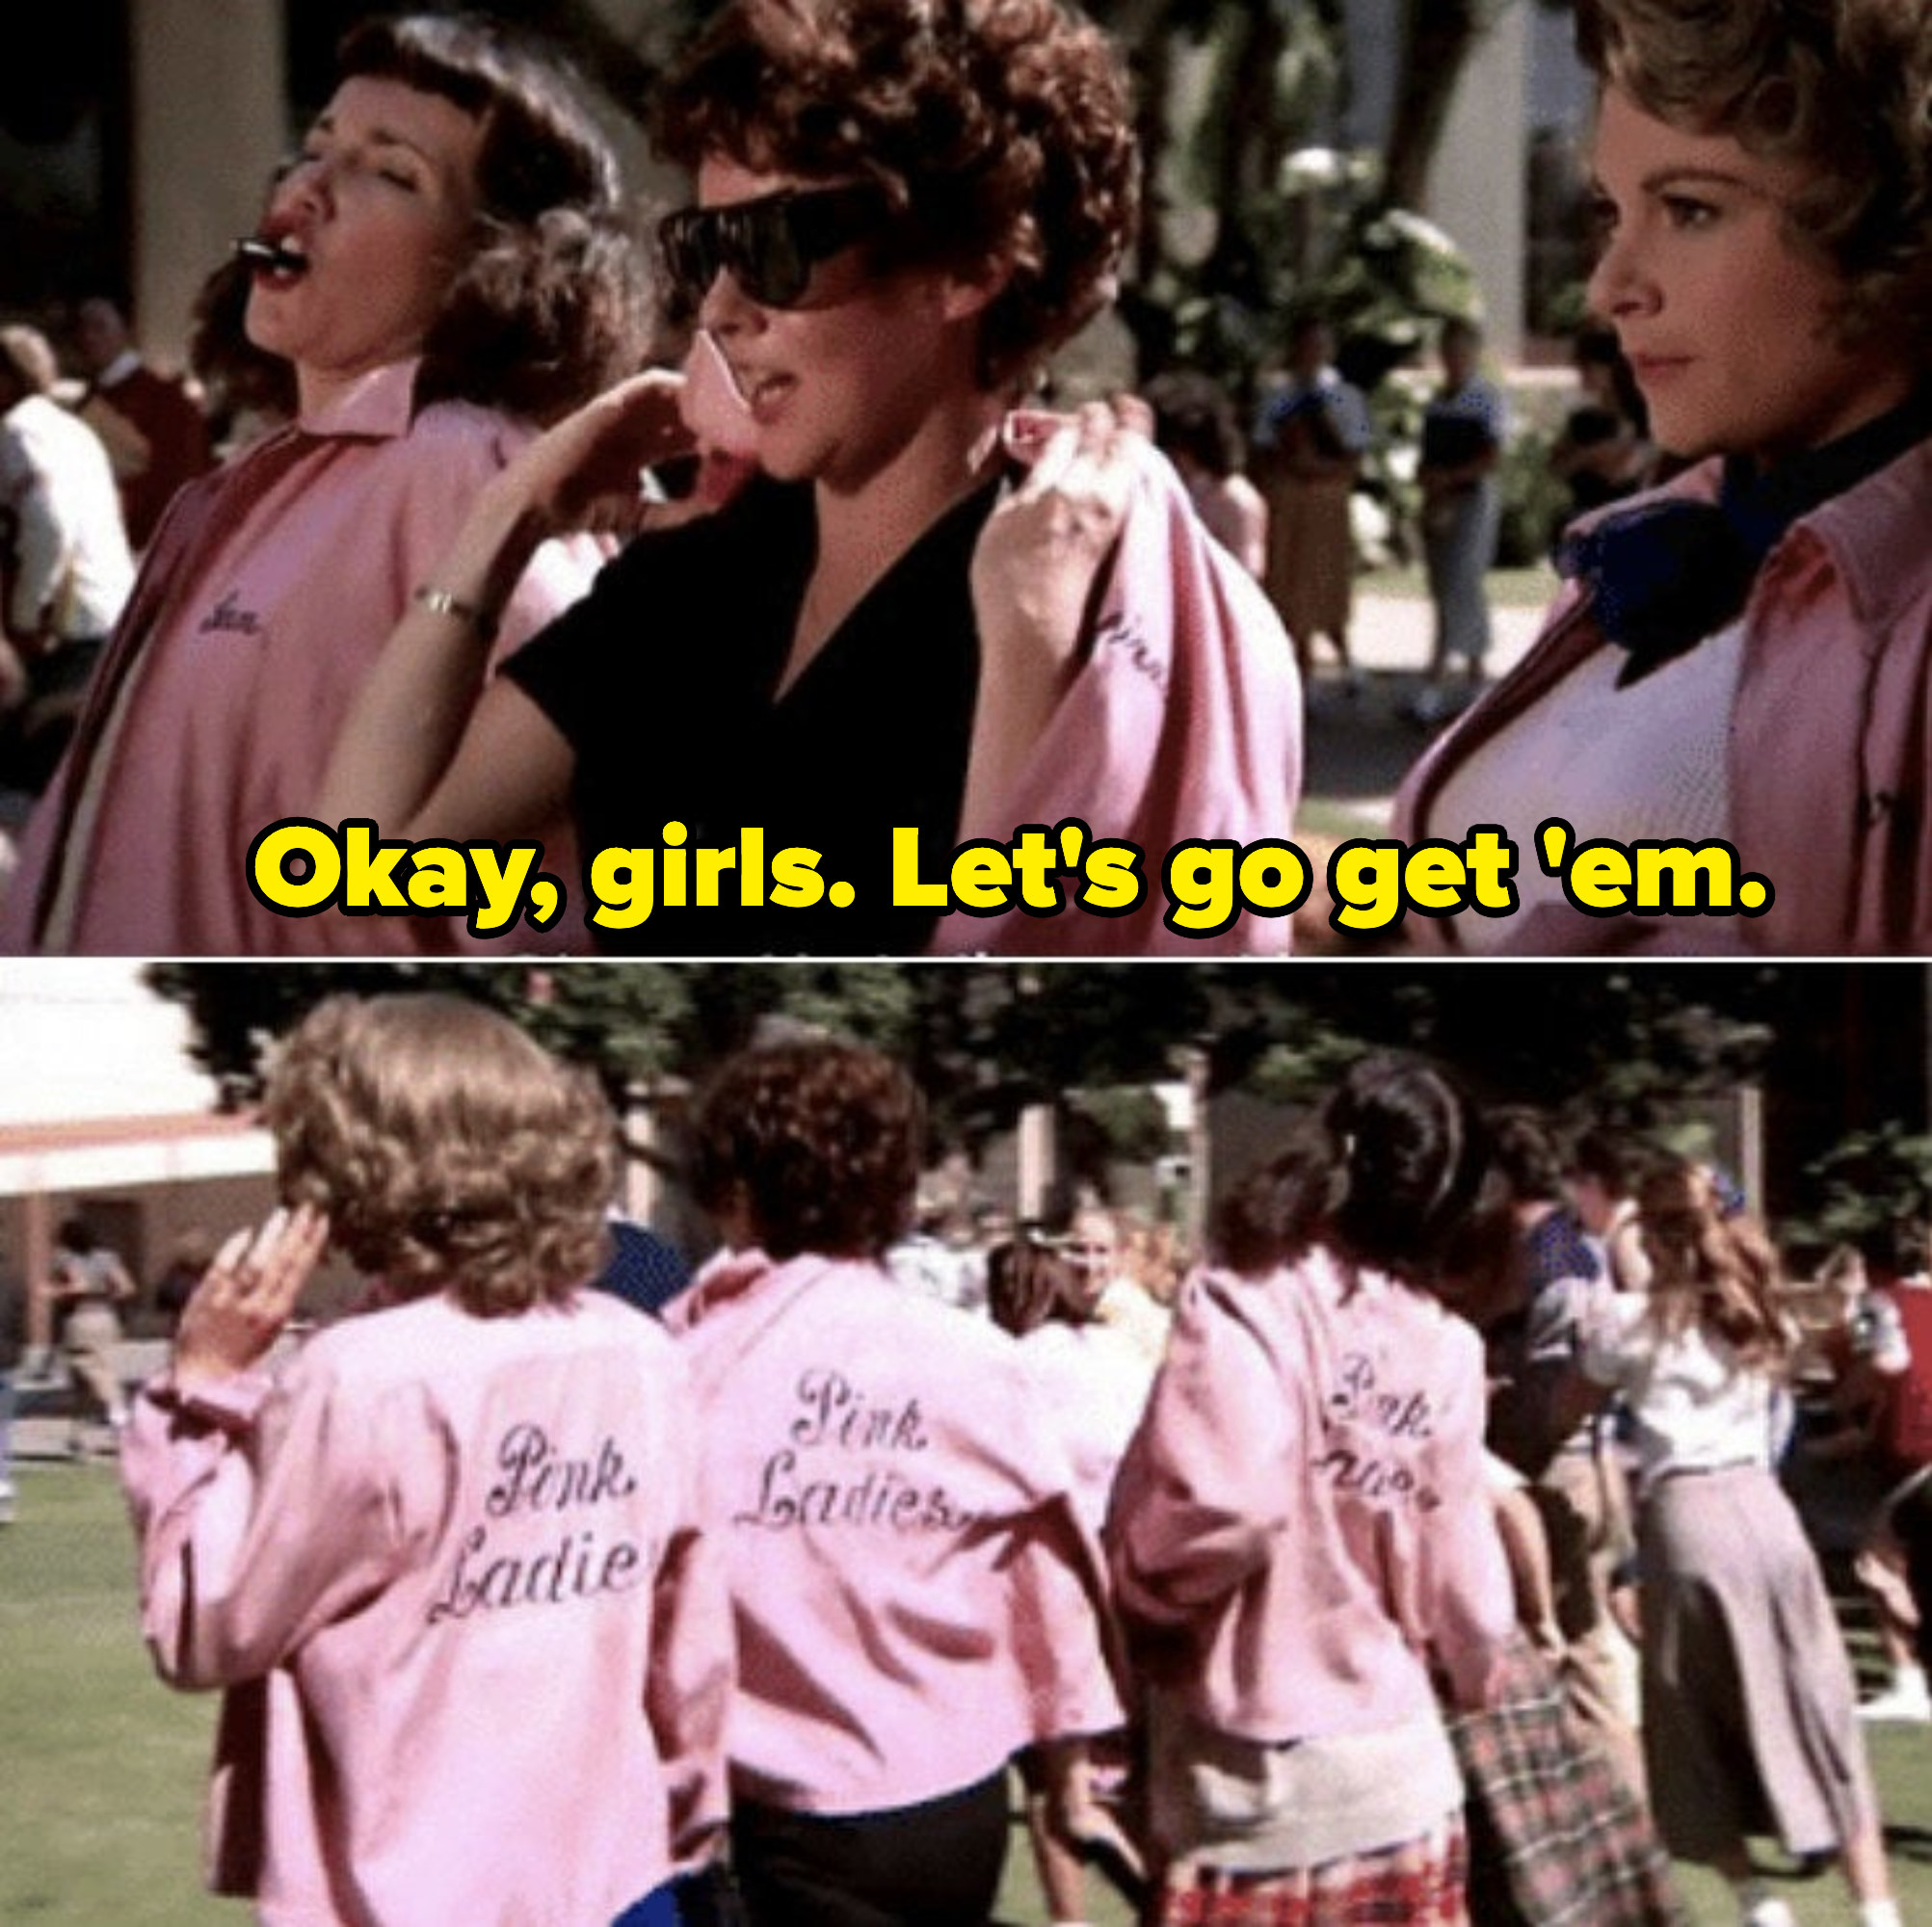 """Jan, Rizzo, and Marty walking into Rydell on the first day of school as seniors, with confidence, saying: """"Okay, girls. Let's go get 'em"""""""